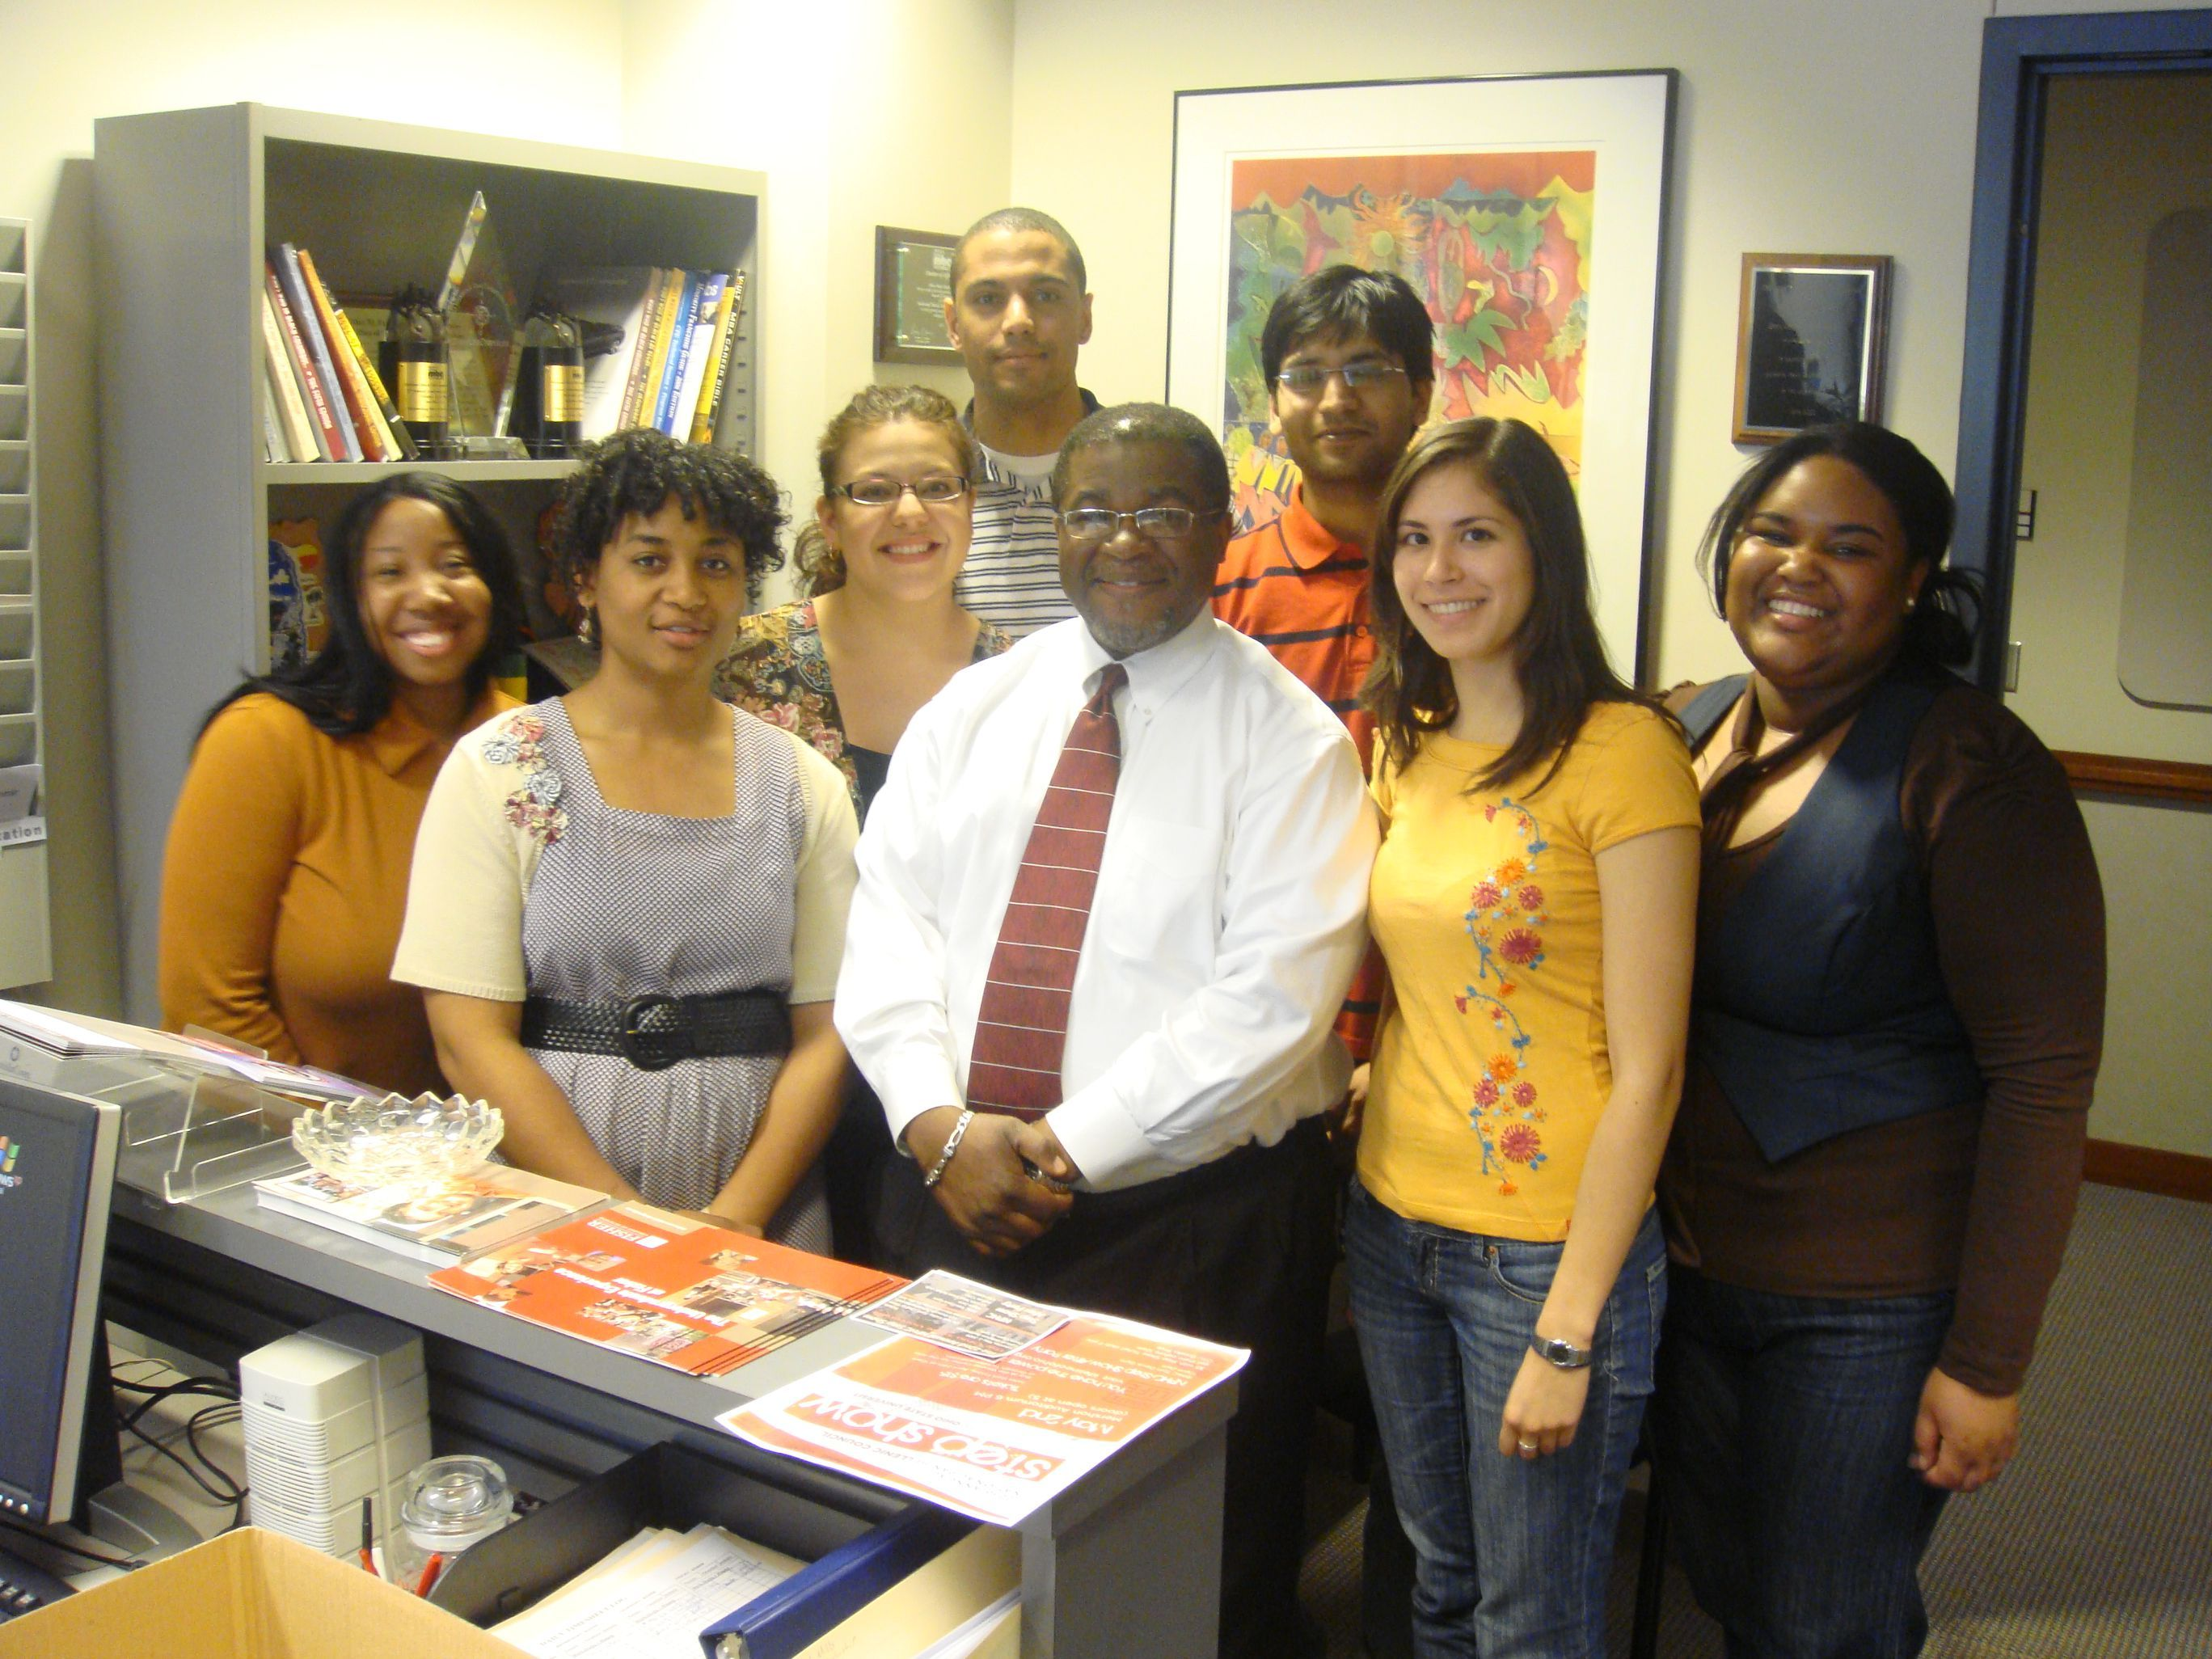 David Harrison with Lori Castillo and fellow Fisher students in the Officer of Diversity and Inclusion Student Services and Corporate and Community Outreach.